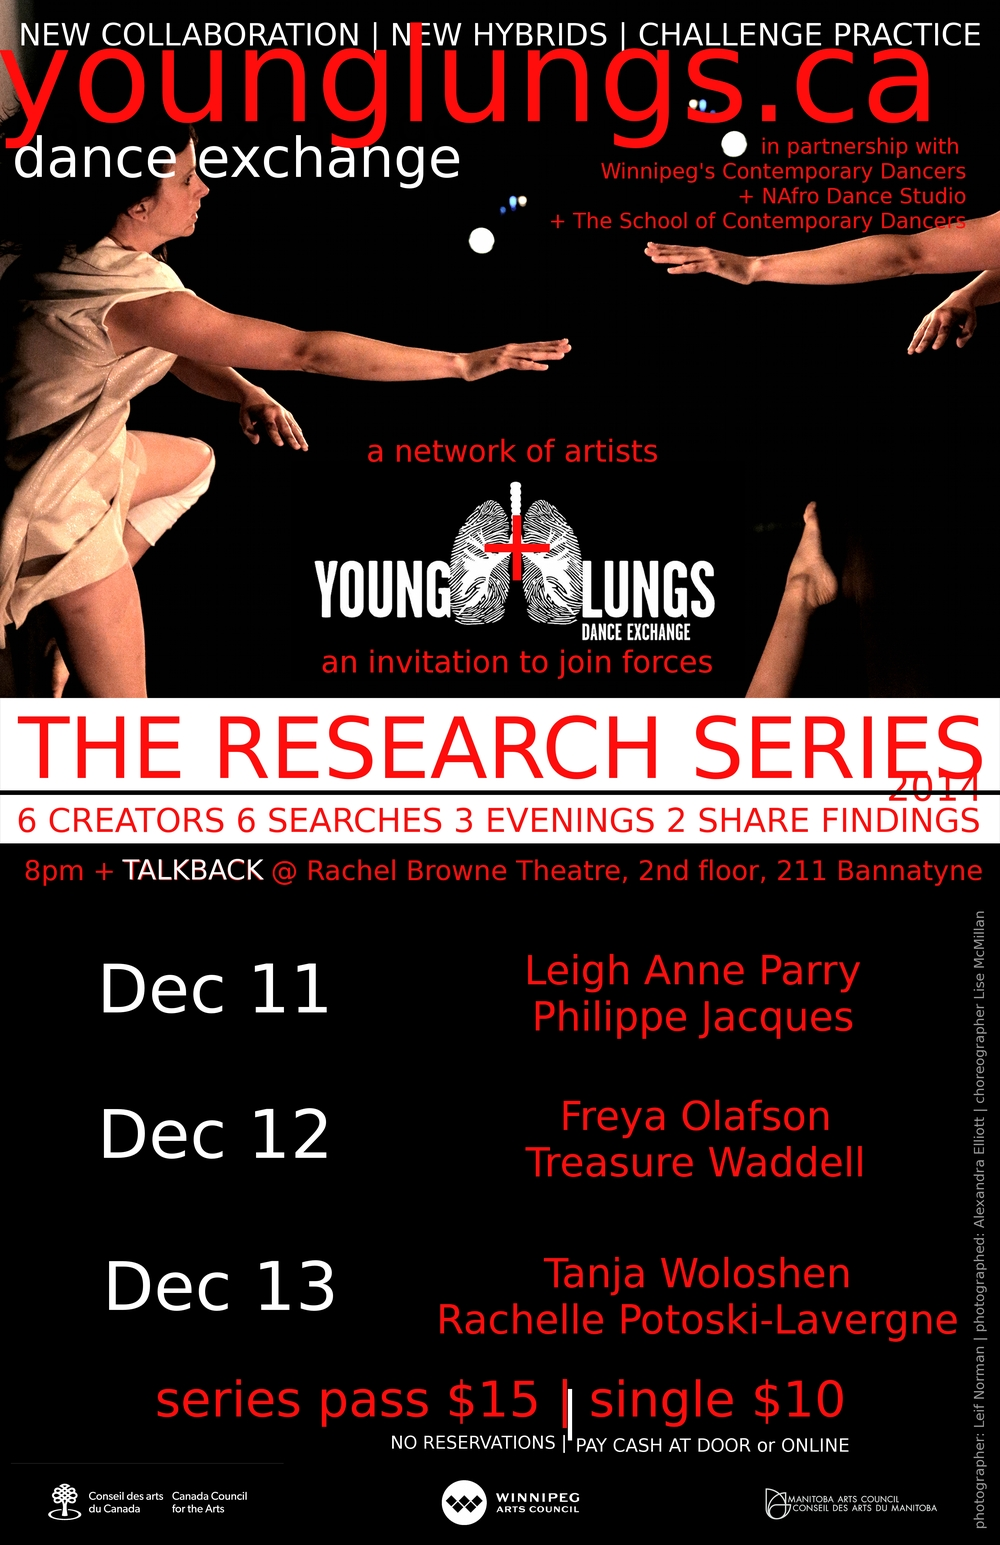 updatedRESEARCH SERIES POSTER 2014.jpg